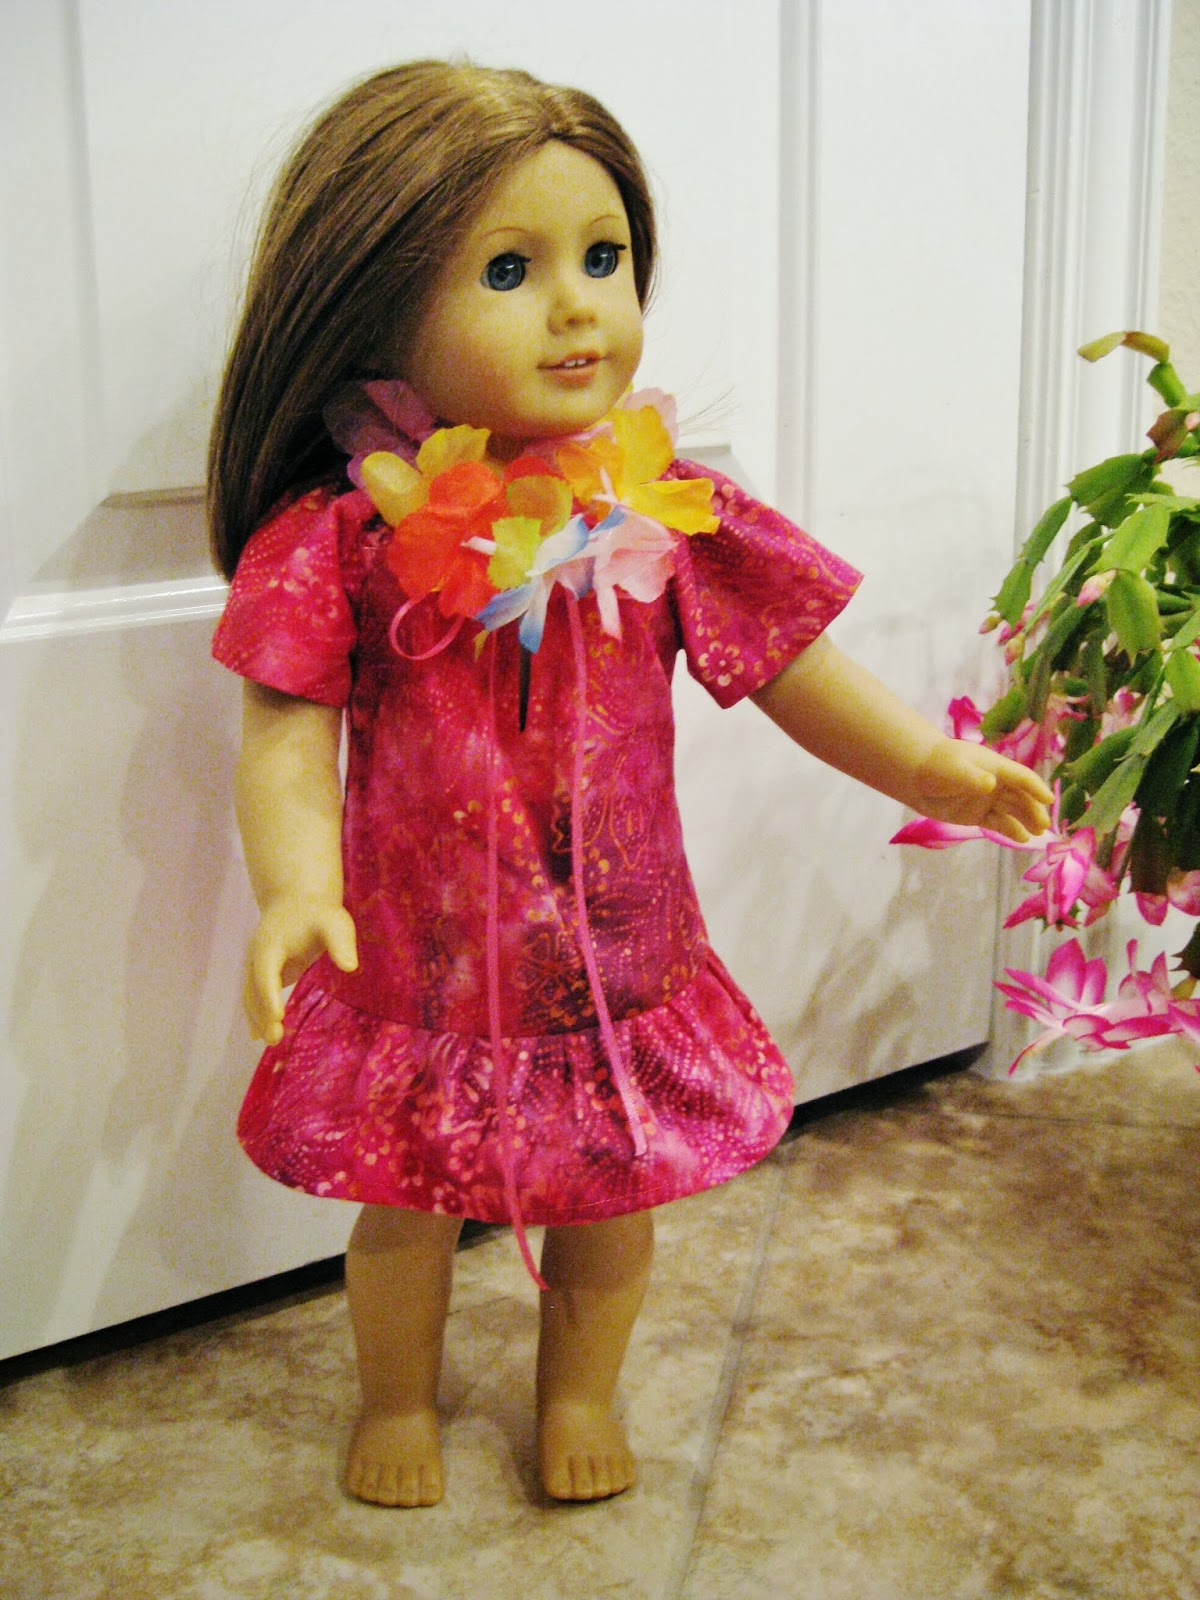 Hawaiian doll dress with free pattern | bonnieprojects.blogspot.com